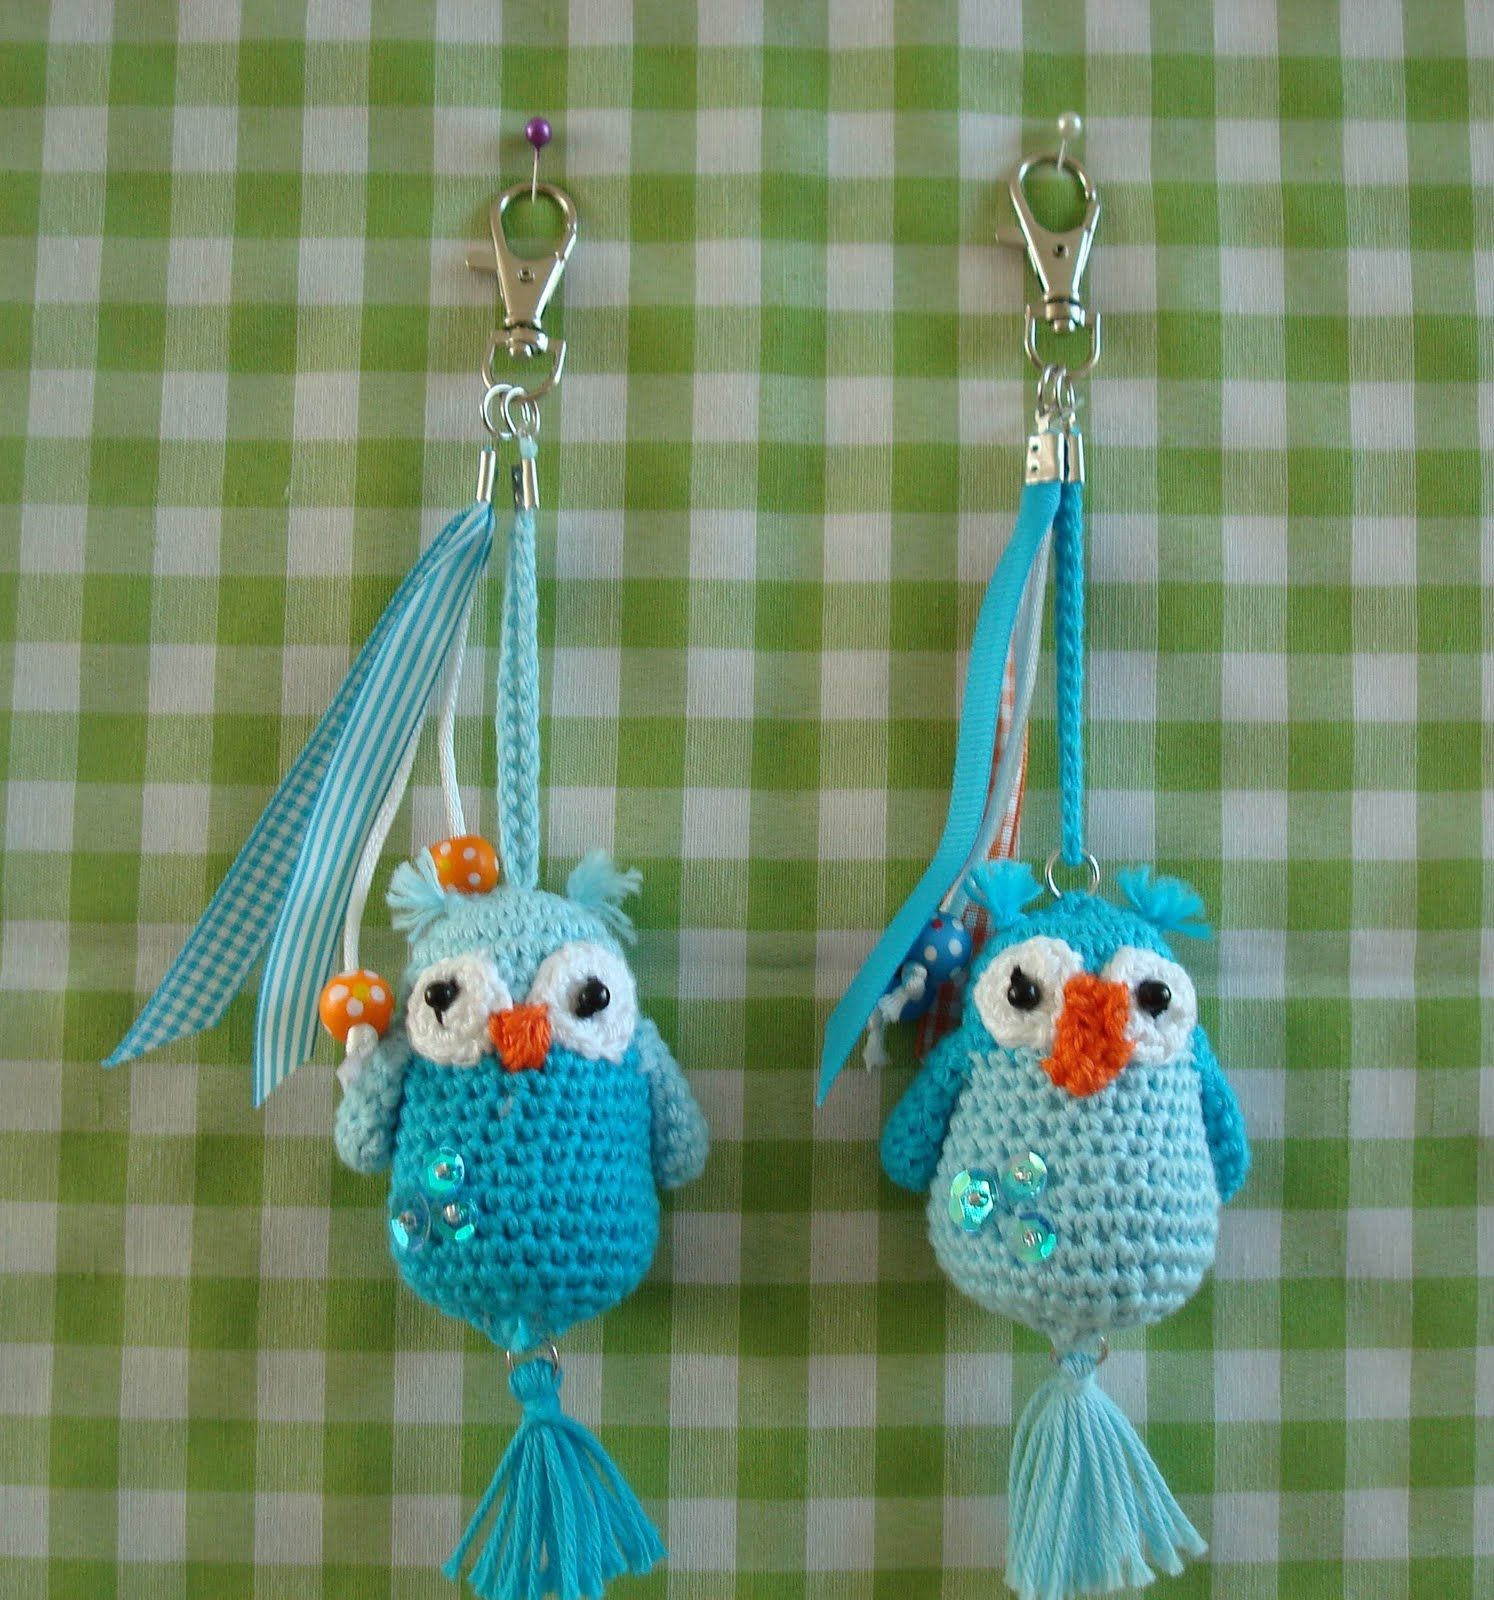 haken sleutelhangers on pinterest key rings haken and crochet frog. Black Bedroom Furniture Sets. Home Design Ideas